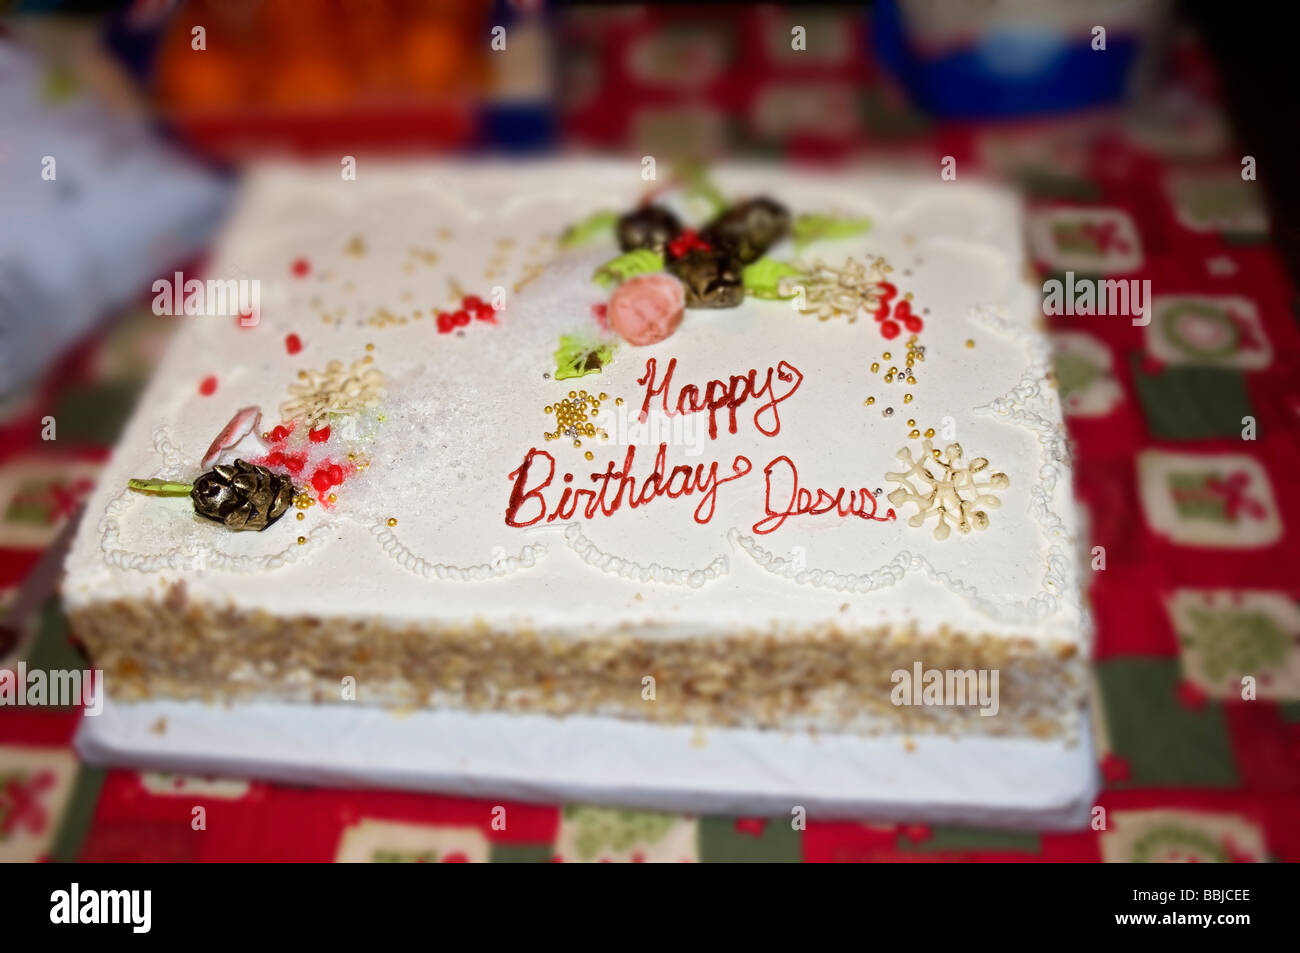 Astounding Happy Birthday Jesus Christmas Birthday Cake At Local Church Stock Funny Birthday Cards Online Overcheapnameinfo